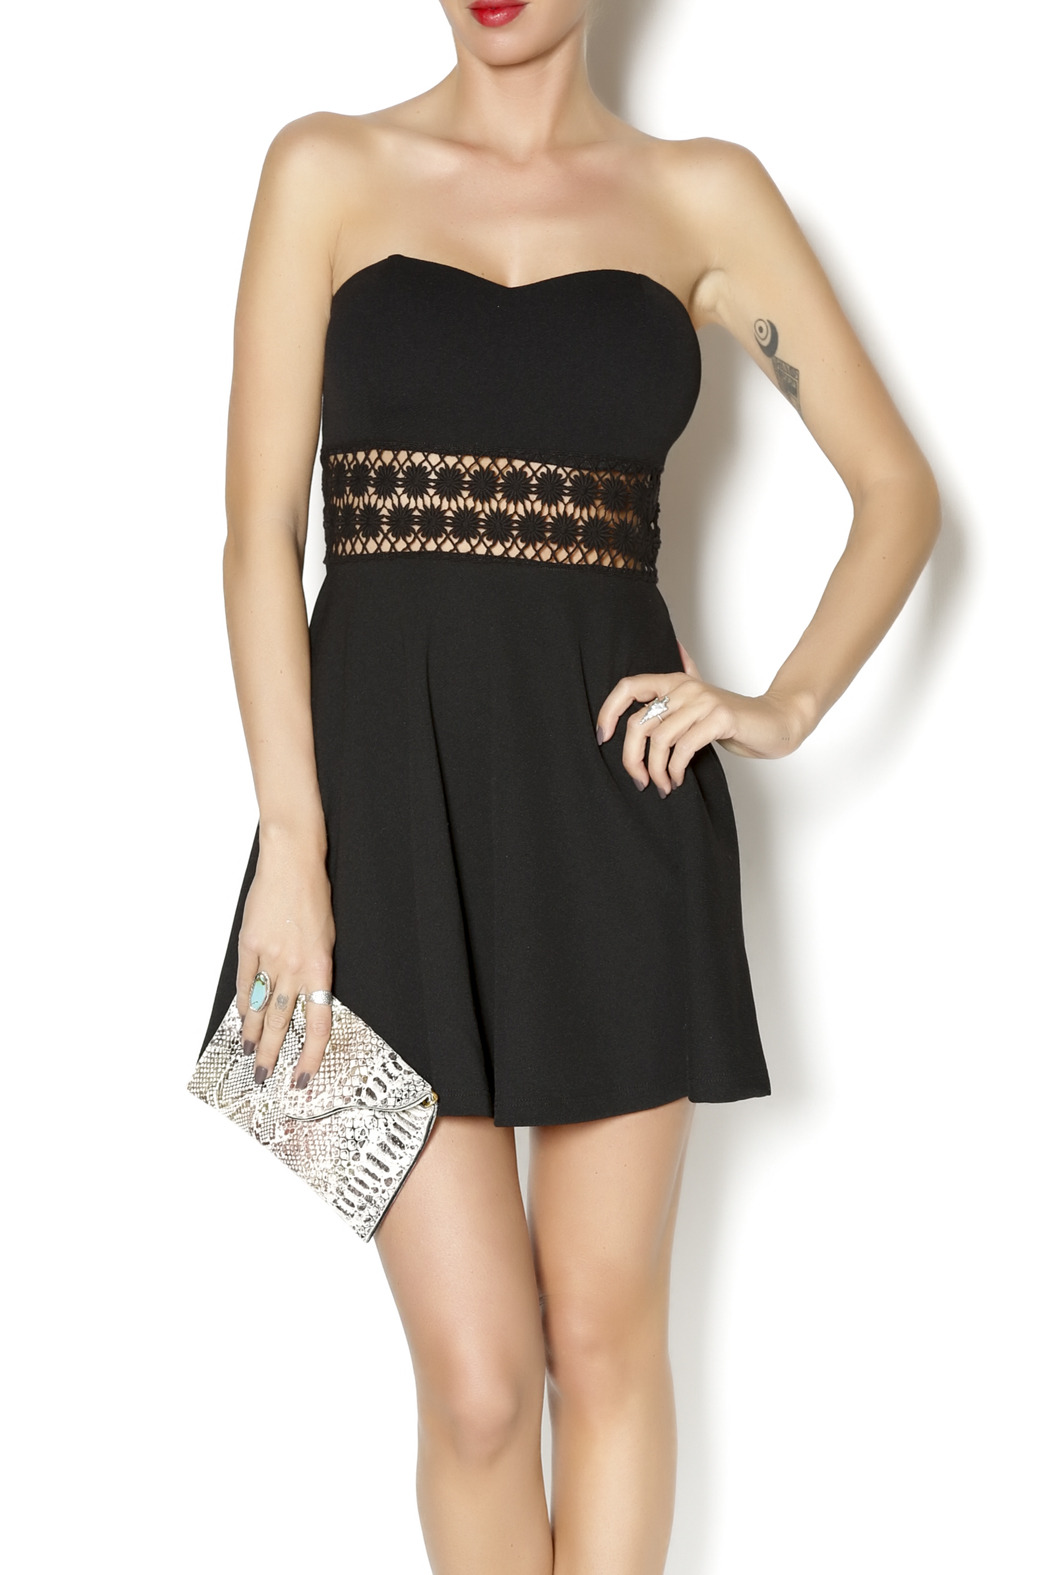 Coveted Clothing Strapless Emily Dress - Front Cropped Image